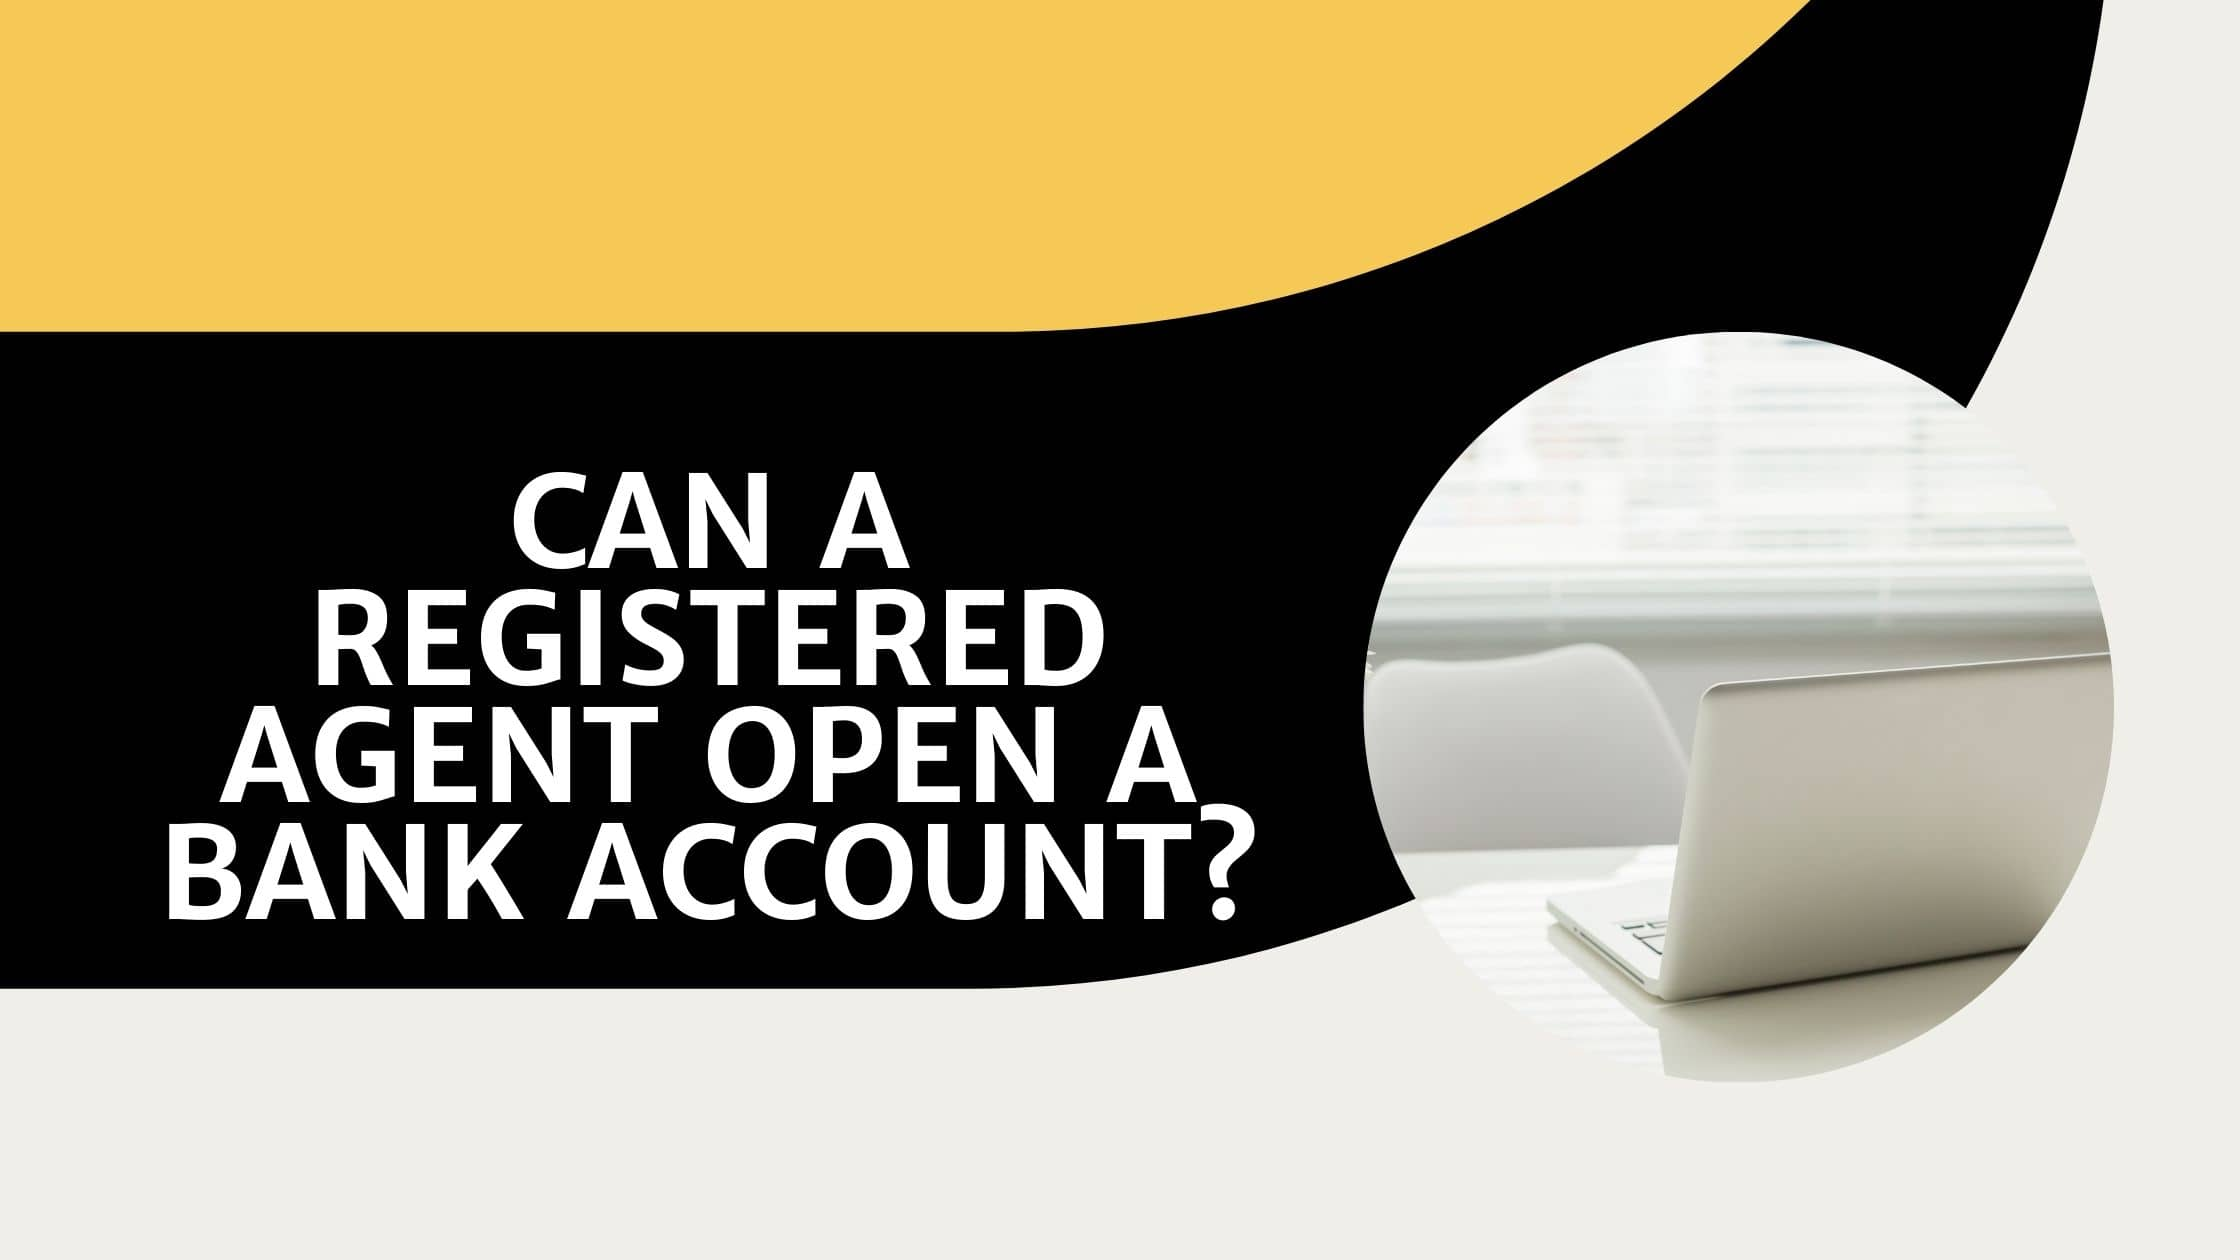 Can a Registered Agent Open a Bank Account?